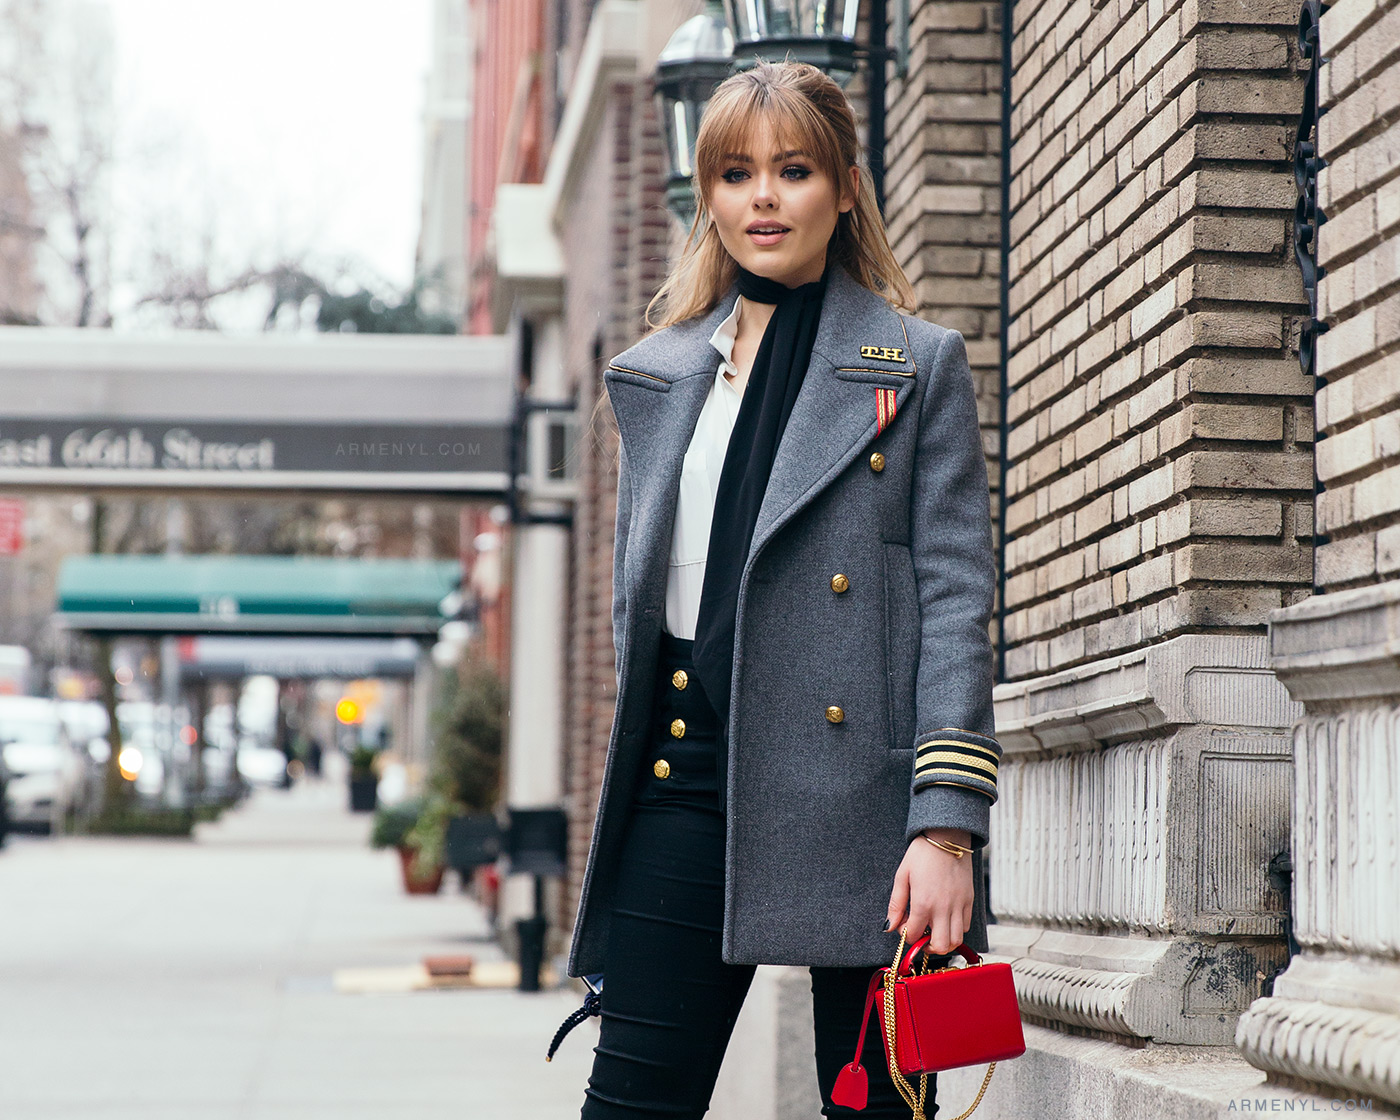 Street style Kristina Bazan at New York Fashion Week in Grey Tommy Hilfiger Blazer at Tommy Hilfiger FW 16 show in New York City photographed by Armenyl.com